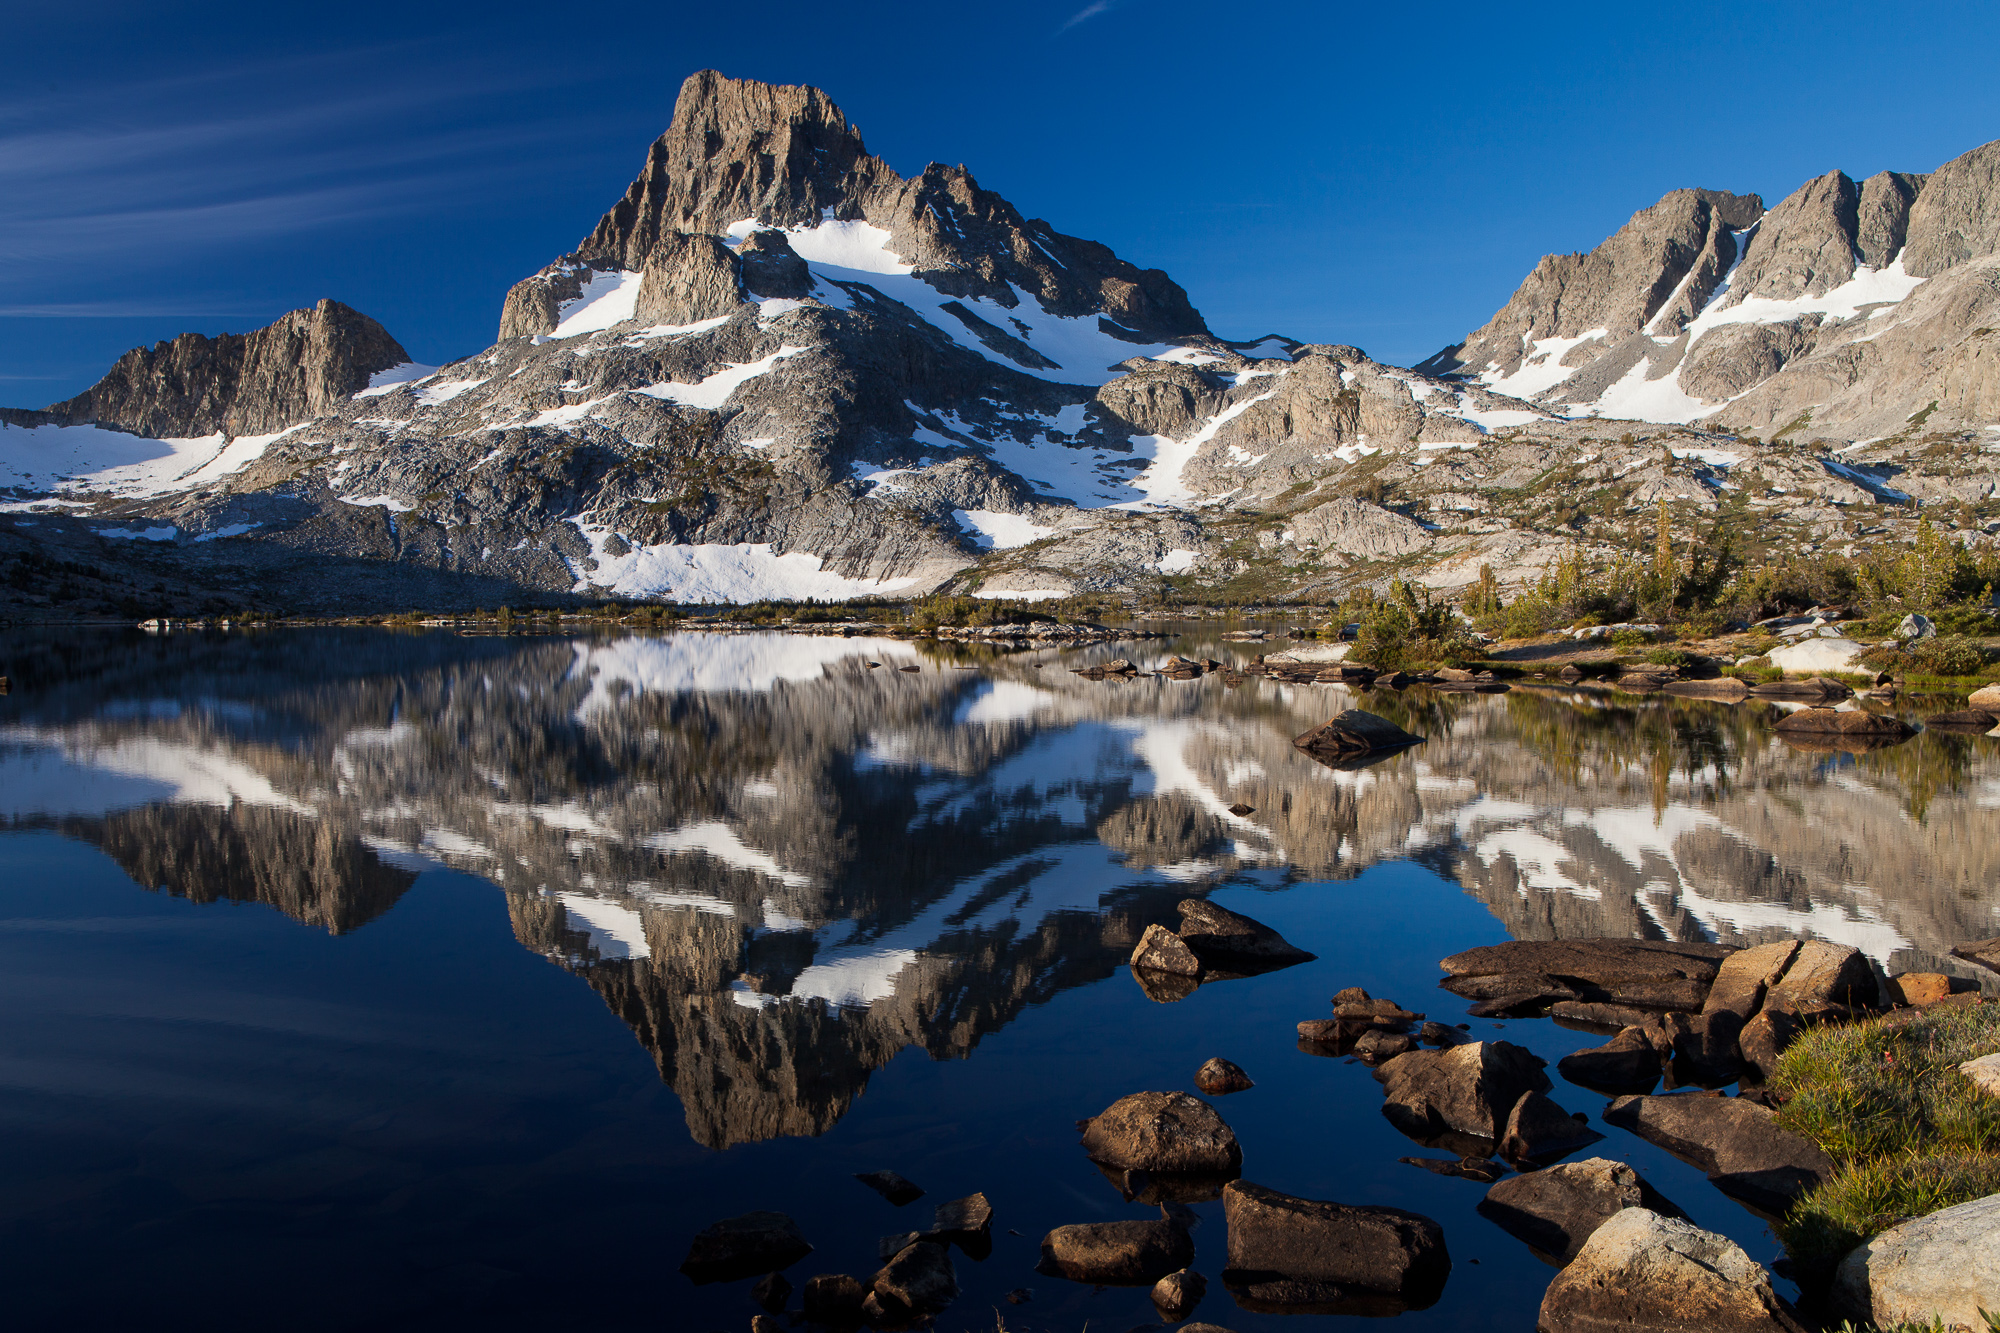 Banner Peak is reflected in Thousand Island Lake at dawn, Ansel Adams Wilderness